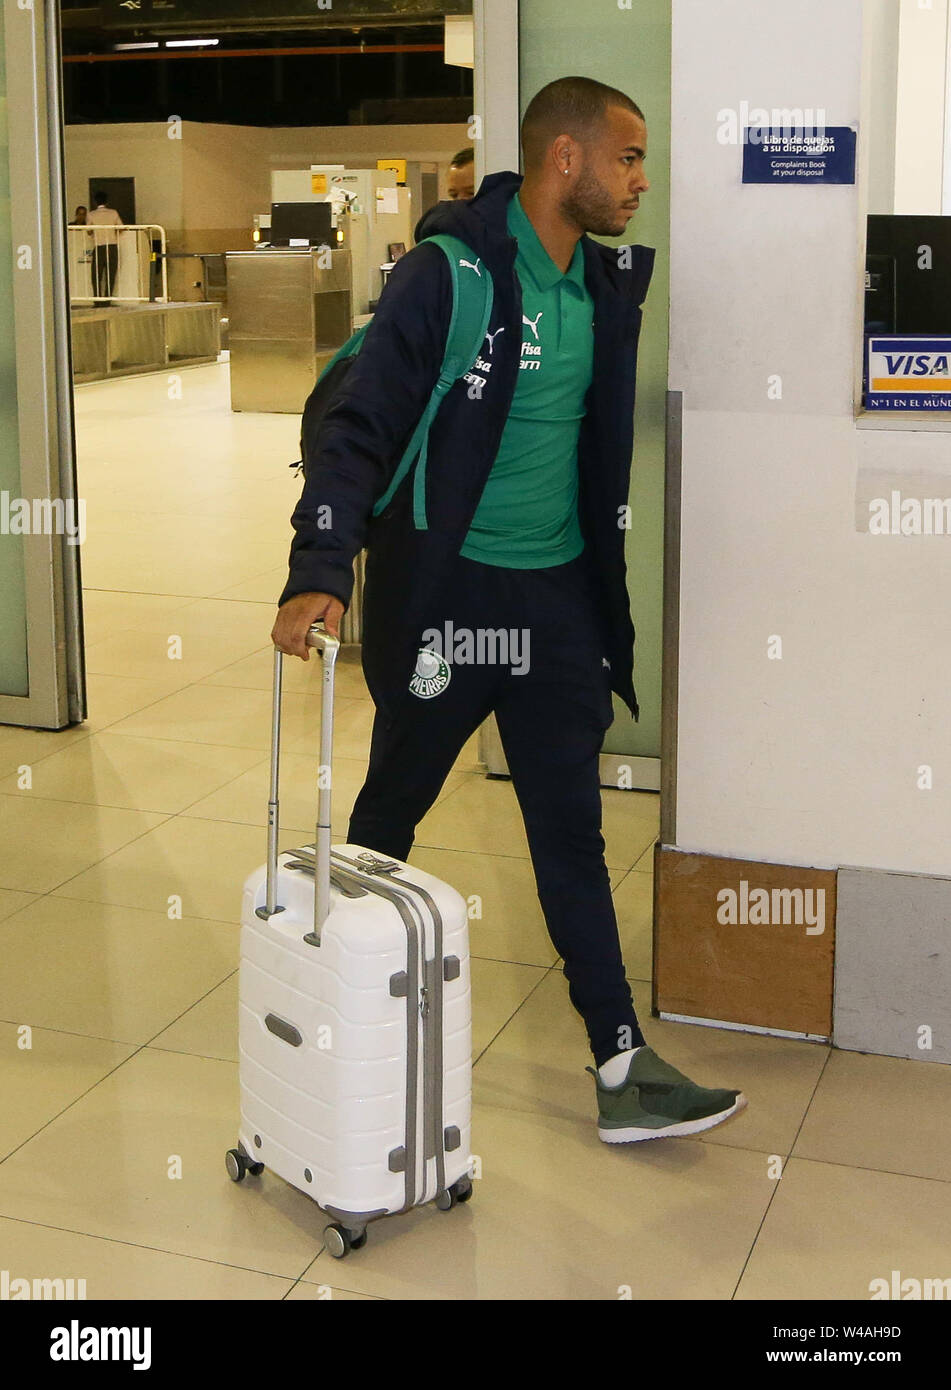 Buenos Aires, Argentina. 21st July, 2019. Mayke player from SE Palmeiras during landing at Buenos Aires International Airport. Credit: Cesar Greco/FotoArena/Alamy Live News - Stock Image